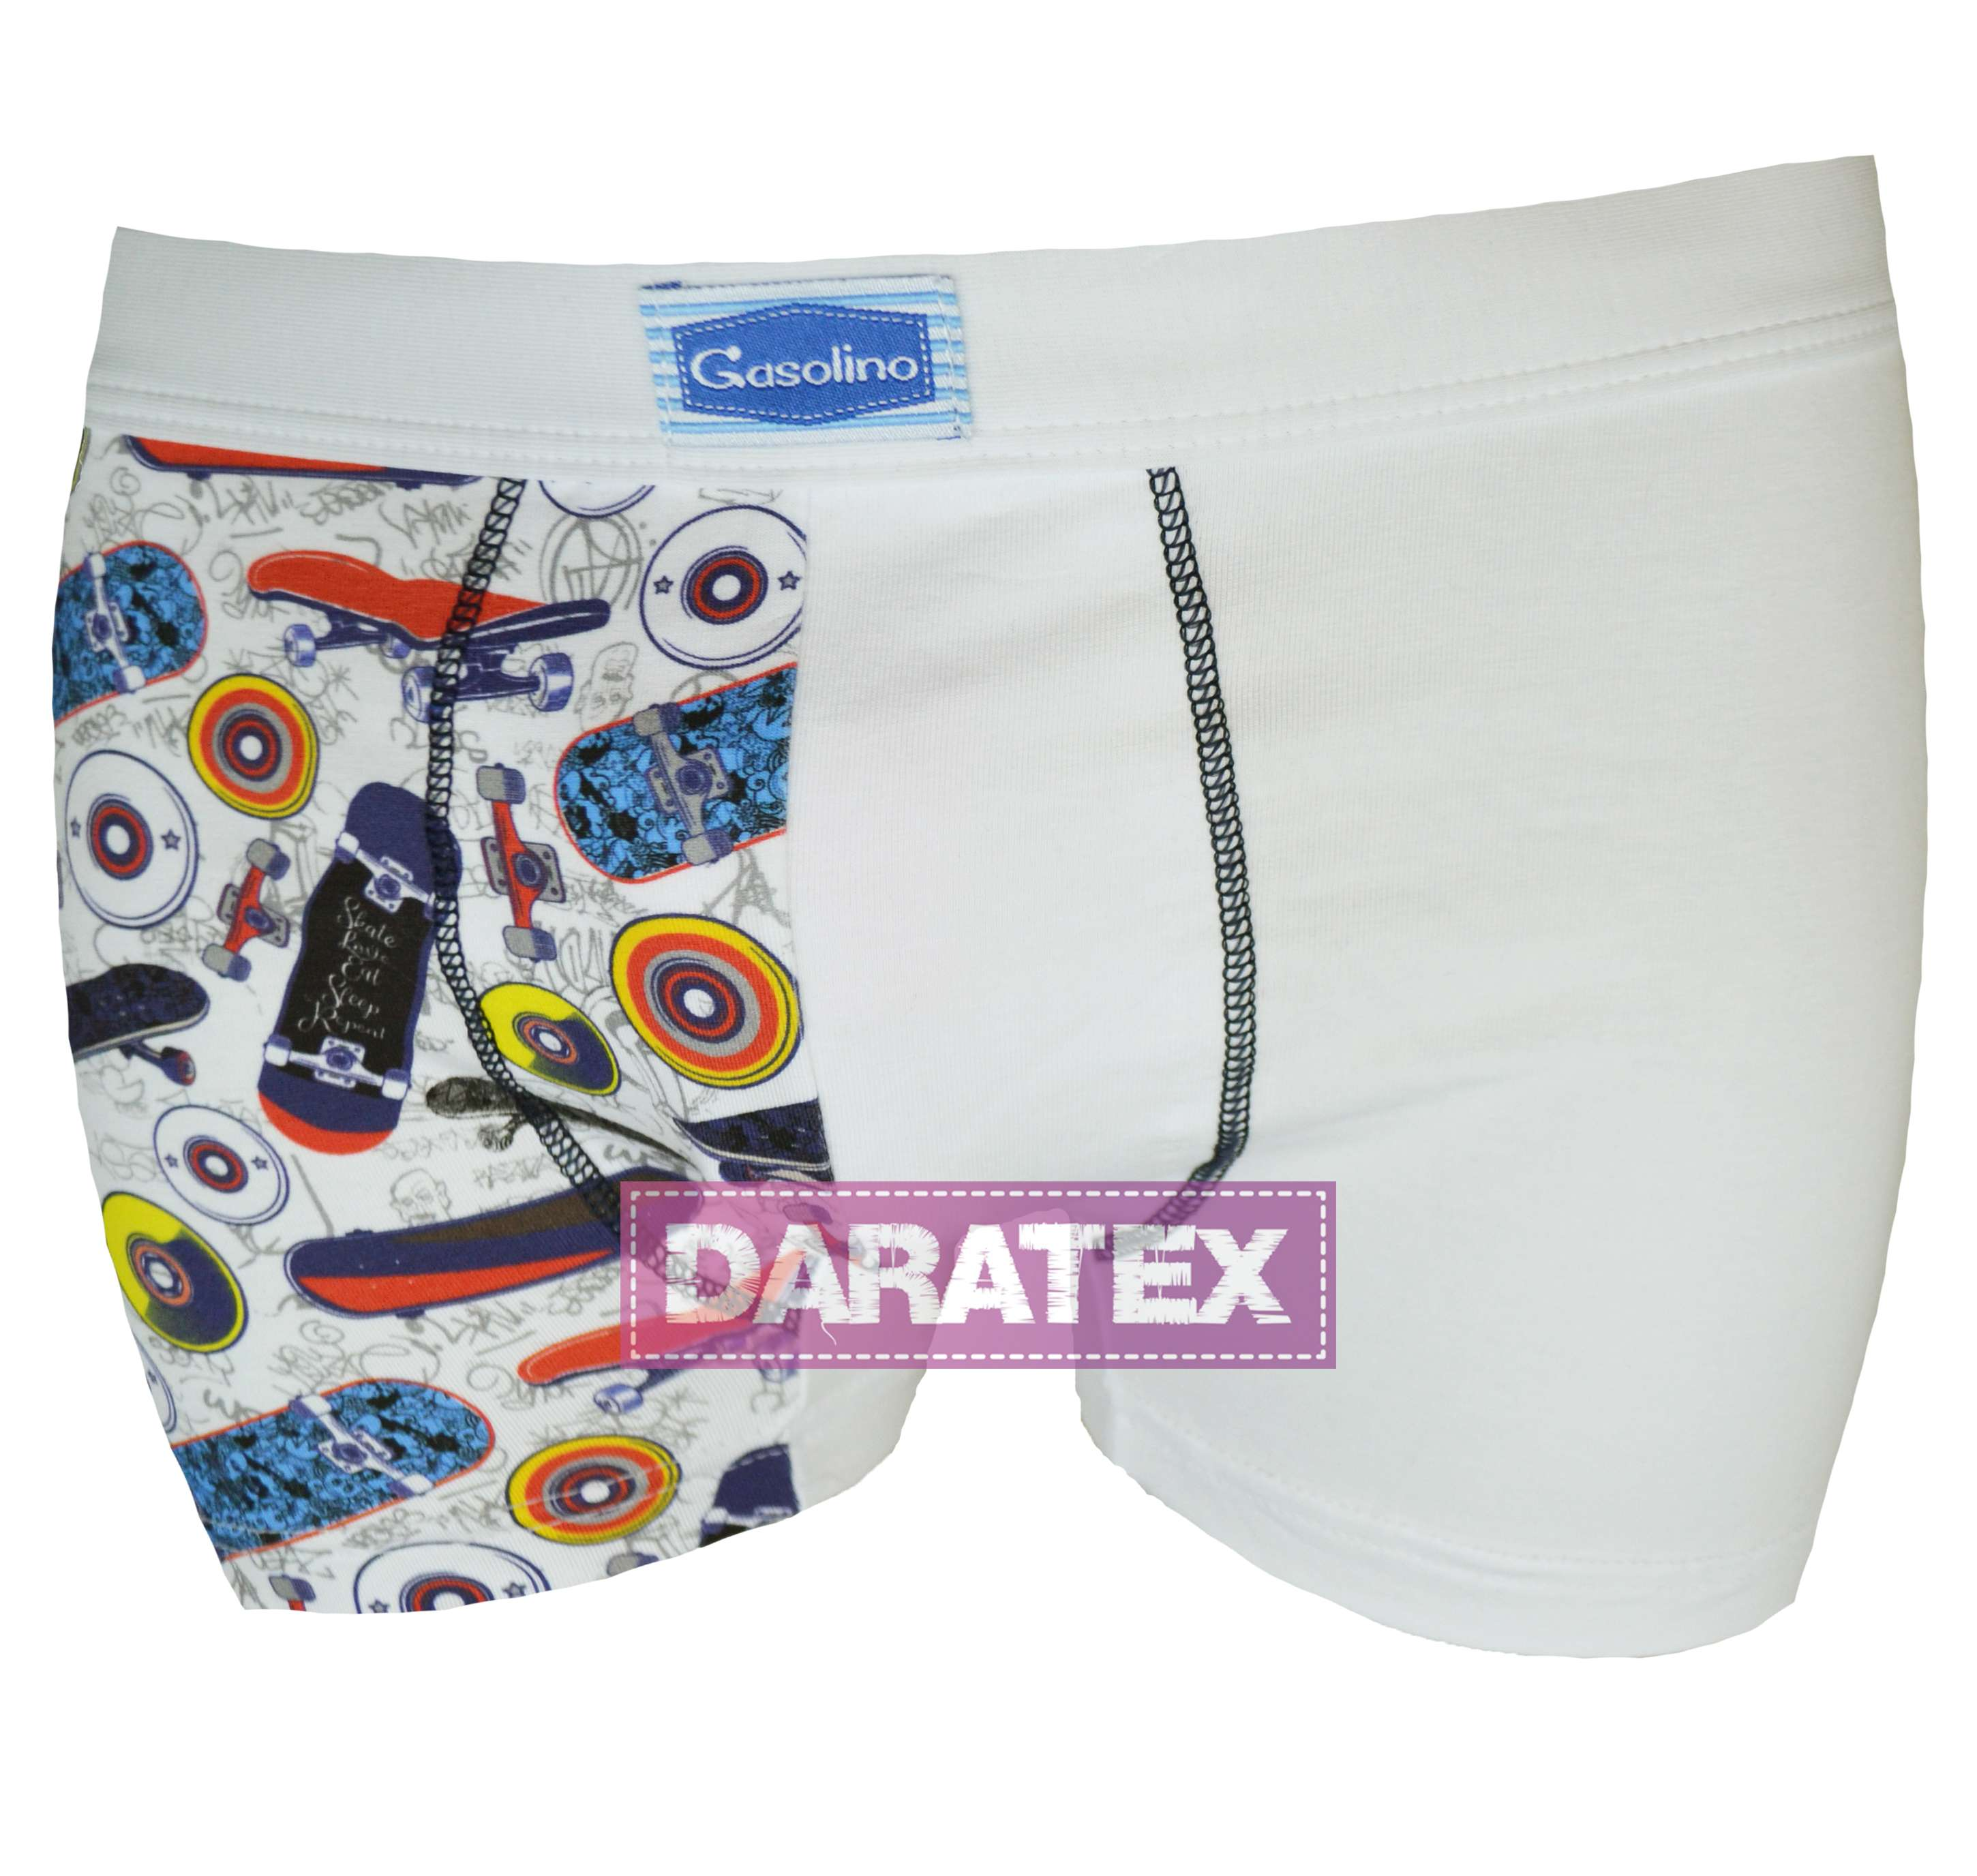 Gasolino chlapecké boxerky 3216 bianco